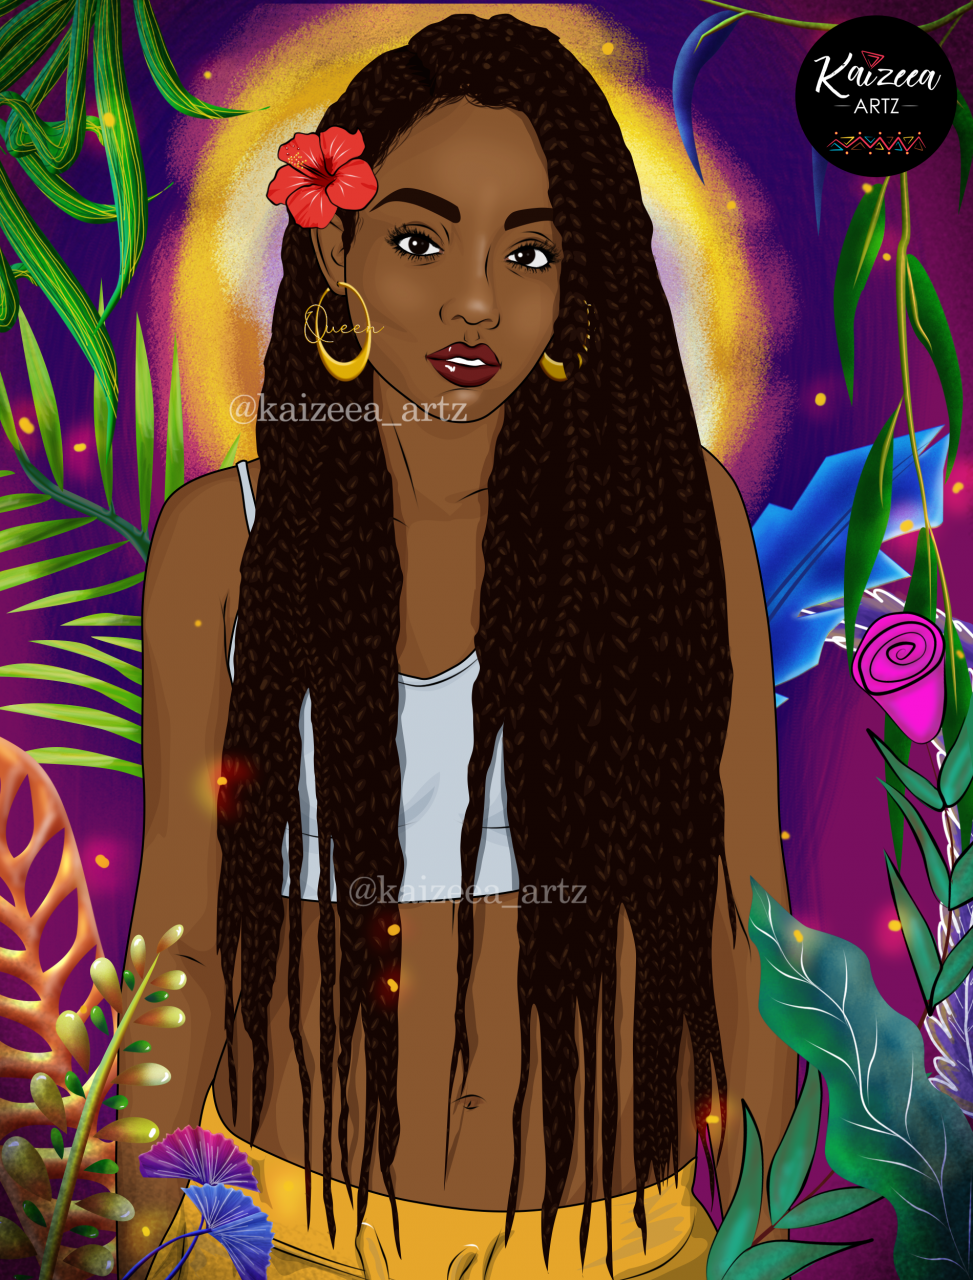 kaizeea artz ka black beauty black queen goddess afro locs locs style locksé hairstyliste coiffure coiffeuse locs dreadlocks natural hair women with locs locnation loc living men with locs loc movement instagram locs on instagram mauritius mauritian artiste artiste mauricienne lart digital digital painting cartoon art semi realistic plant fram colorful eucalyptus zodiac zodiac art baies berries hair accessories beads accessoire cheveux cheveux naturel rasta boobs art yarn eyelash extension faux cils summer été Wakanda african art afro art top black art top black artist african artist black woman art inspiration drawing while black 2020 Hibiscus red braids creol earring queen rose crop top jean palm alocasia eyes pants yellow tropical print